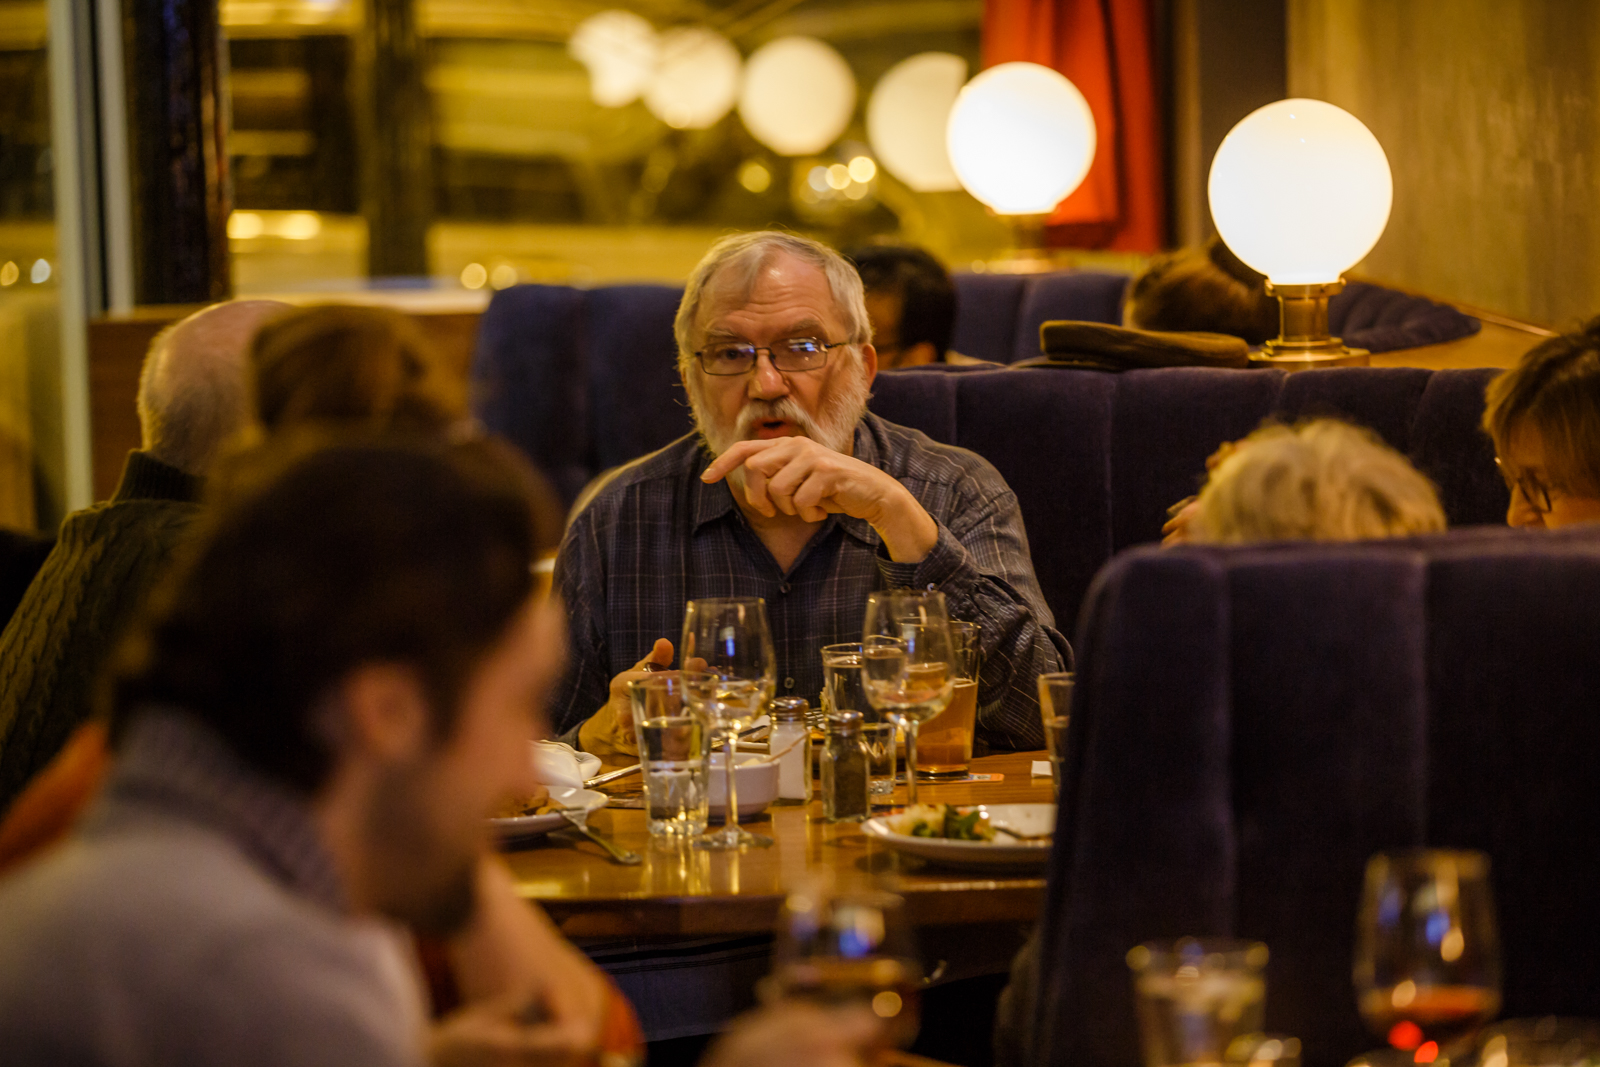 180222-dinner-and-docs-icarus-018.jpg